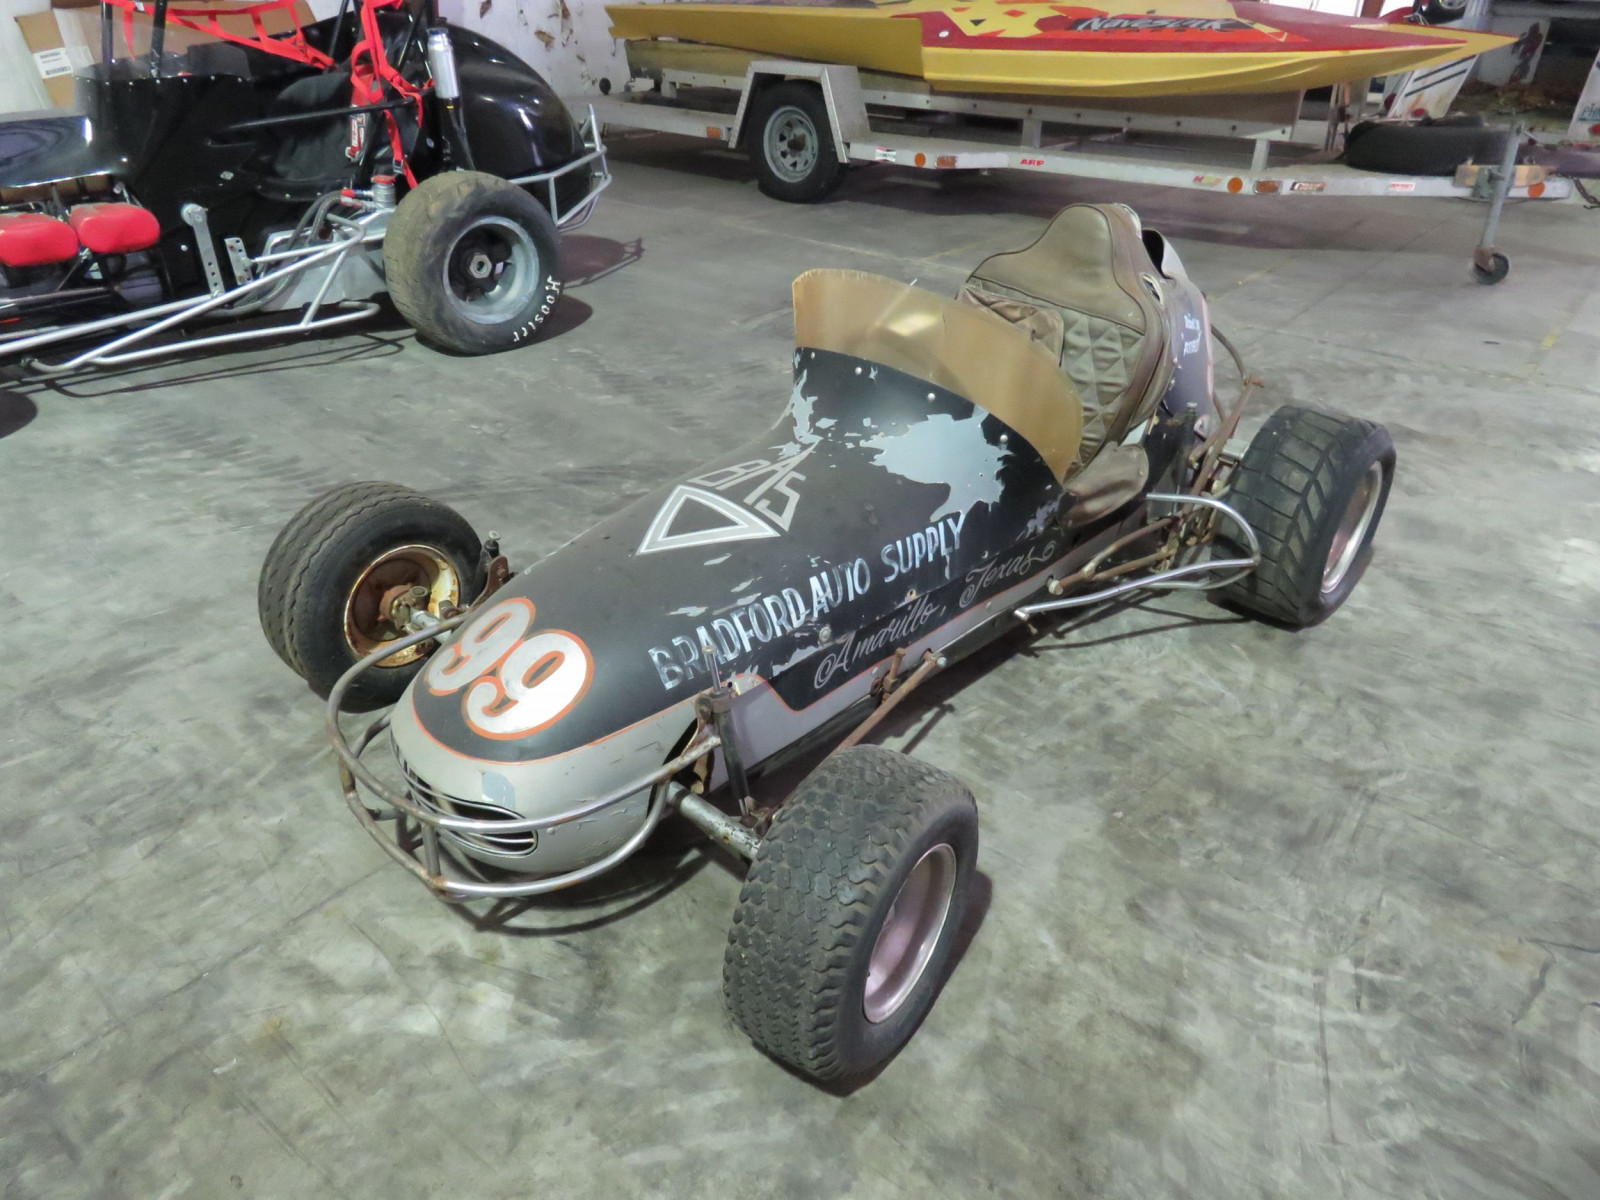 Vintage  1/2 scale Midget  Race Car - Image 1